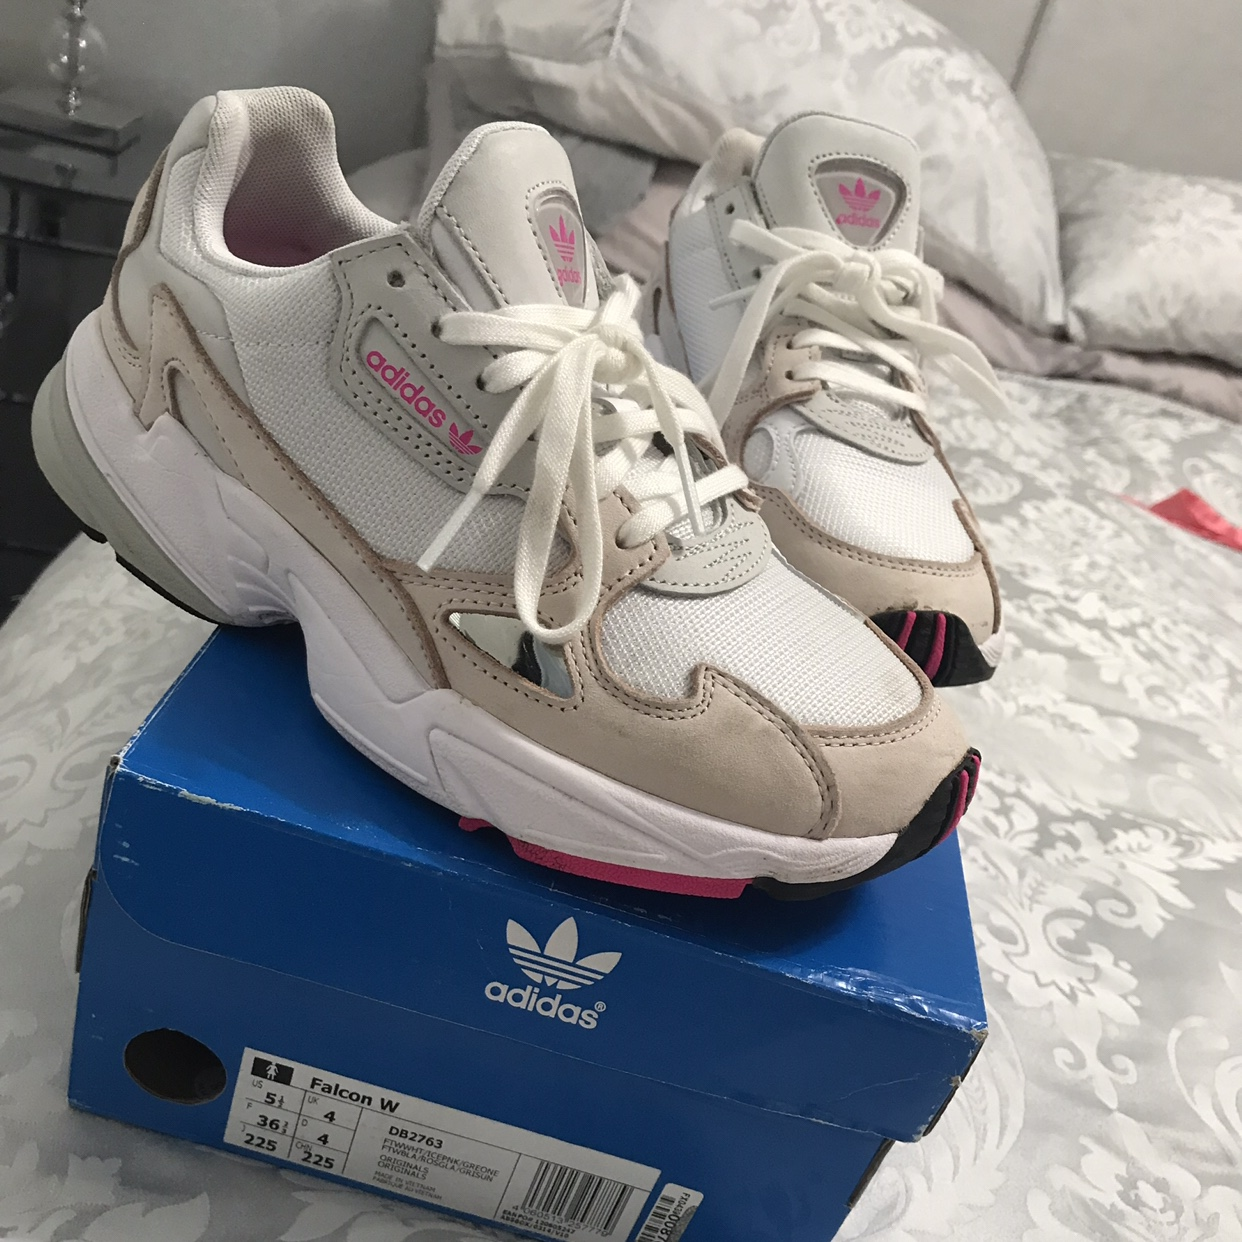 Adidas Falcon By Kylie Jenner Size 4